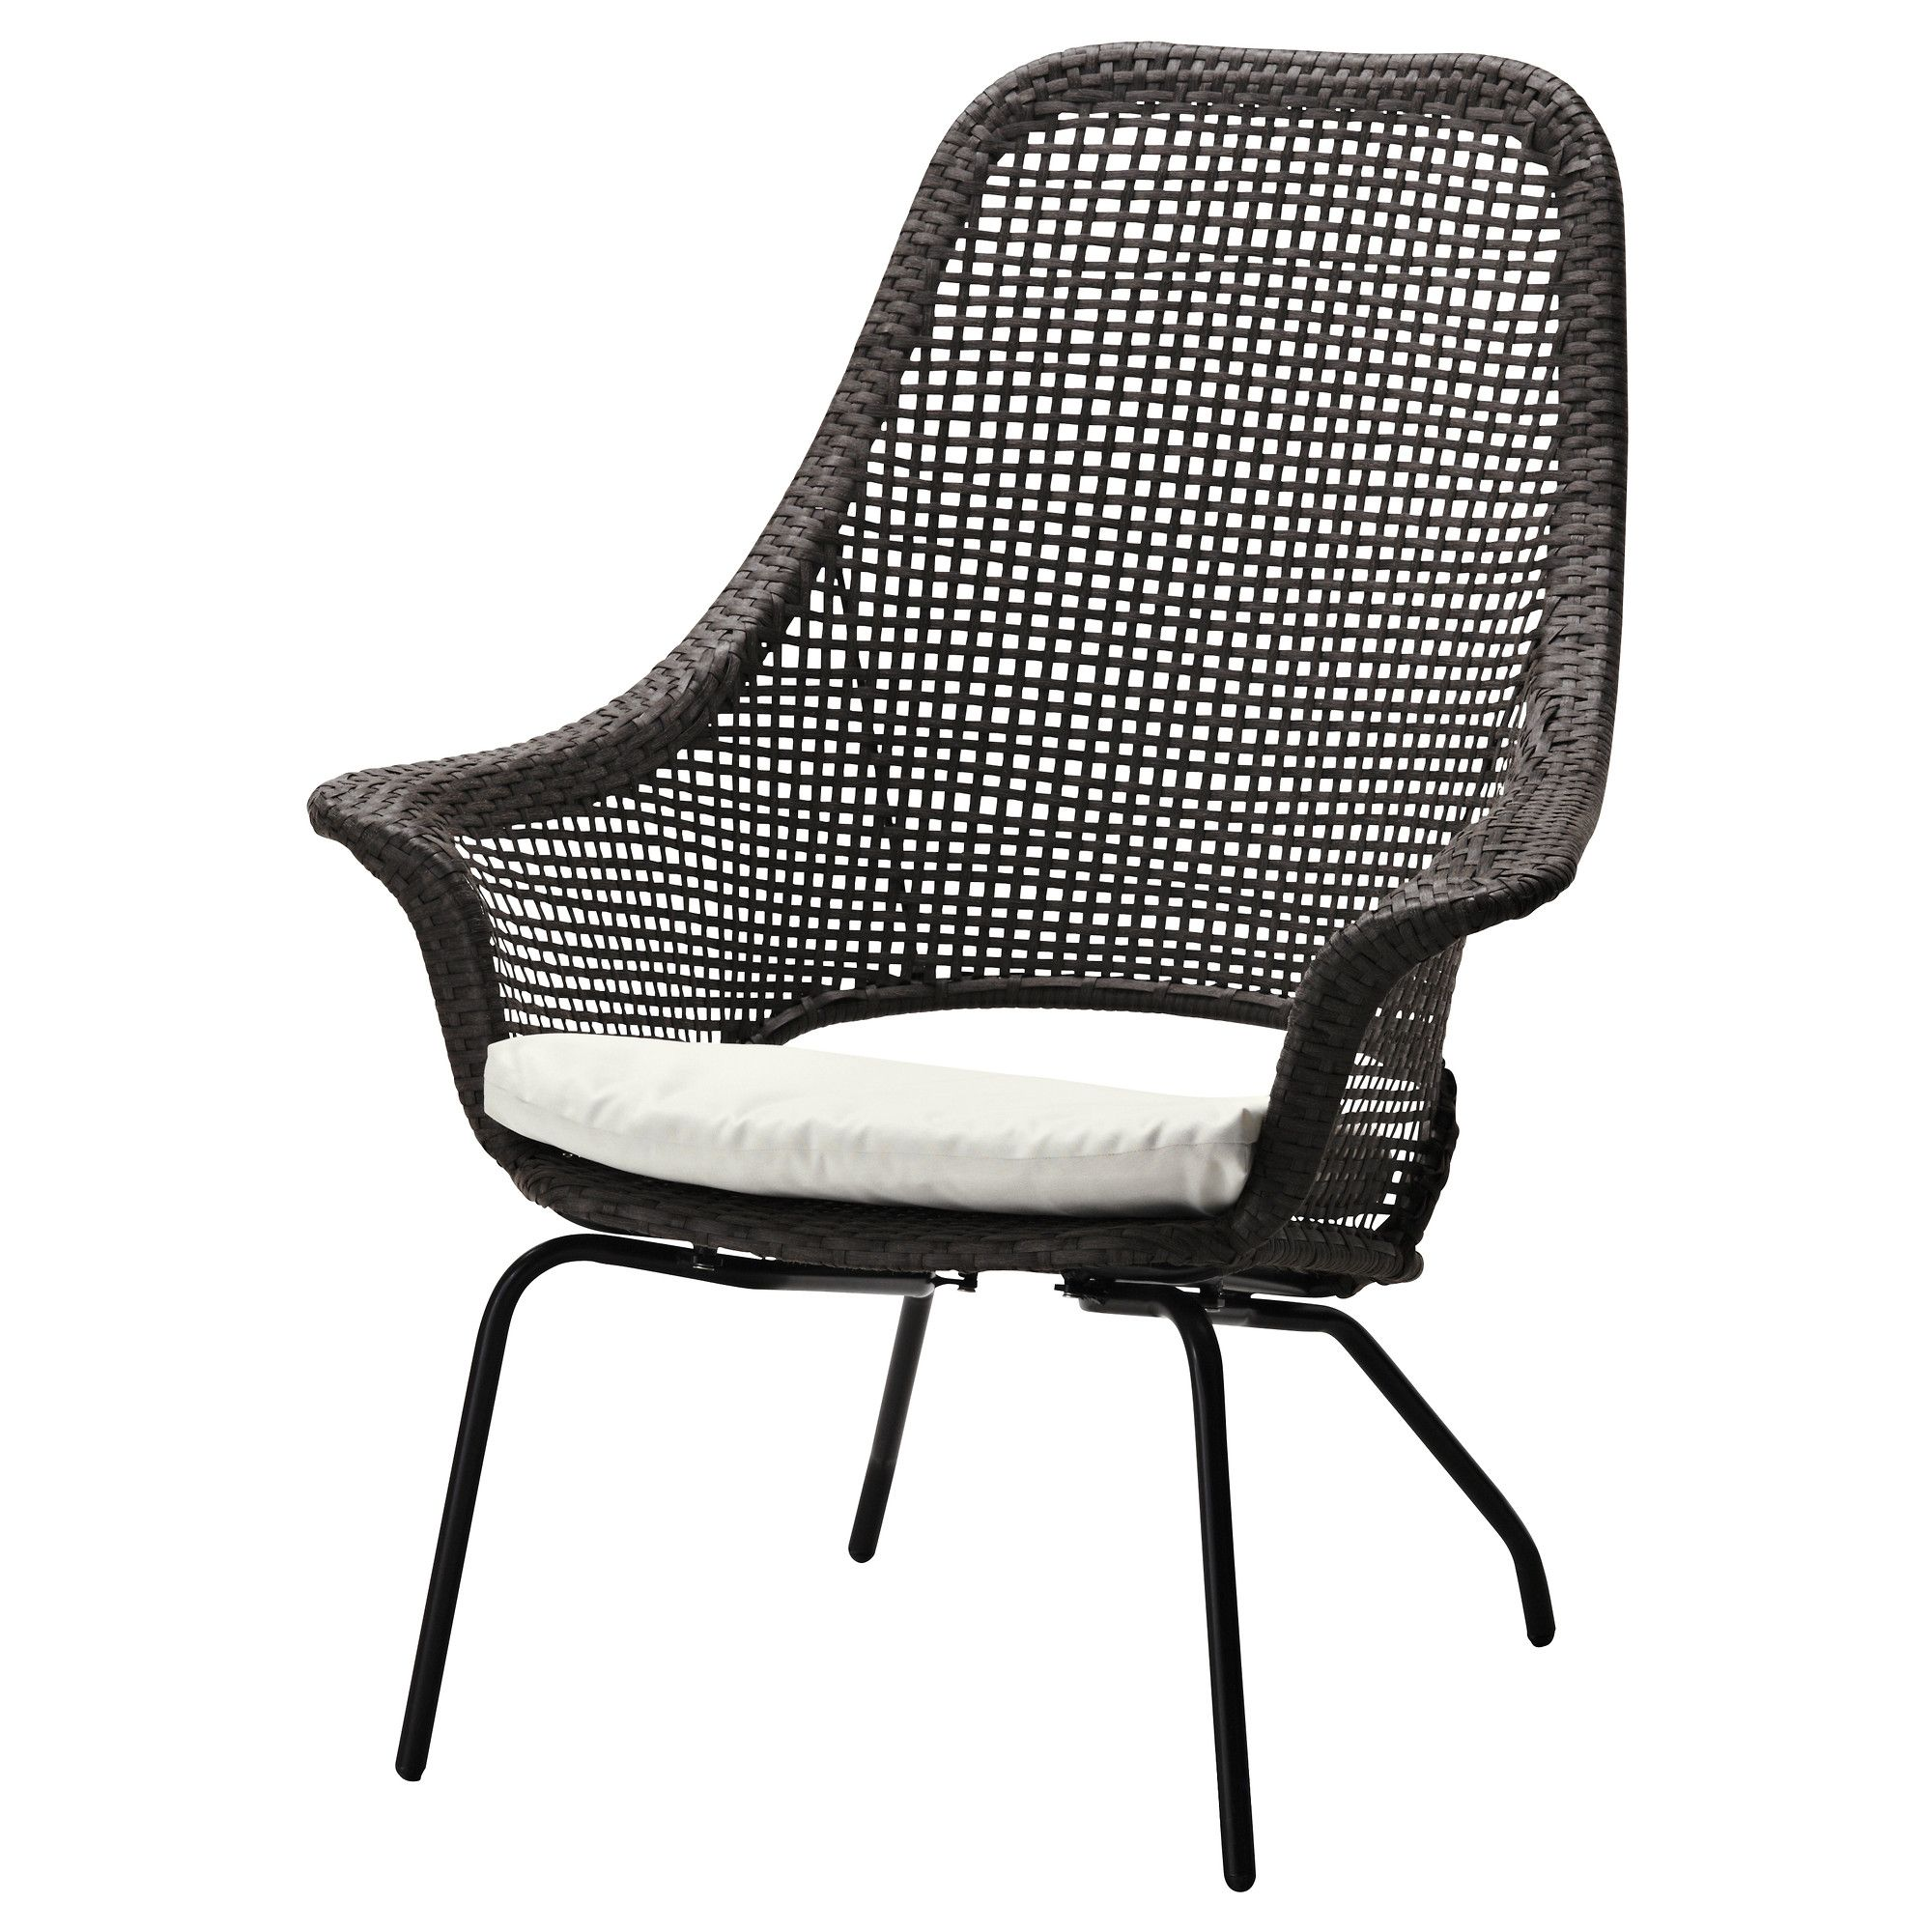 Rattan Sessel Ikea On The Patio AmmerÖ Rattan Armchair With Pad Dark Brown Beige